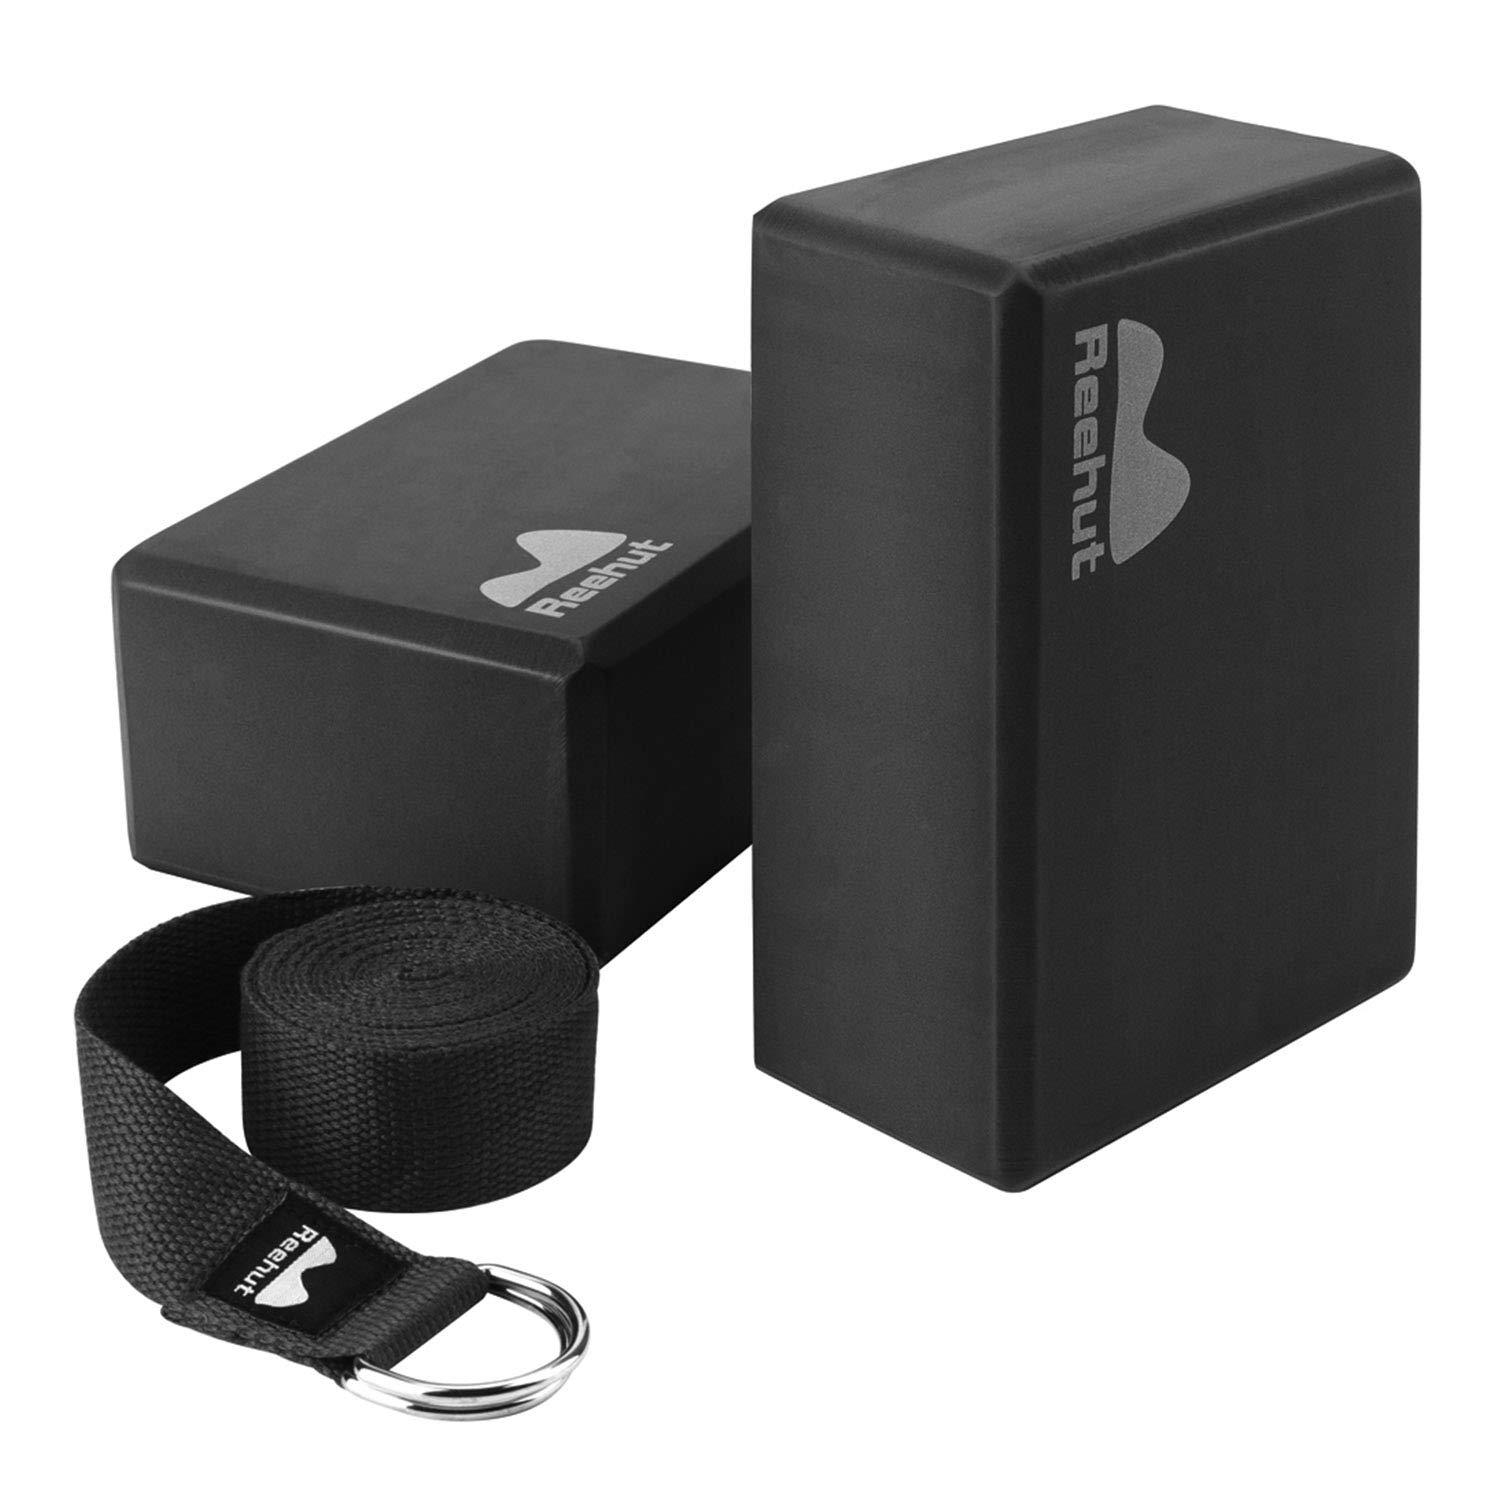 REEHUT Yoga Block (2 PC) and Metal D Ring Yoga Strap(1 PC) Combo Set, 9'' x 6'' x 4''High Density EVA Foam Block to Support and Deepen Poses, 8FT Yoga Belt for Stretching, General Fitness Black by REEHUT